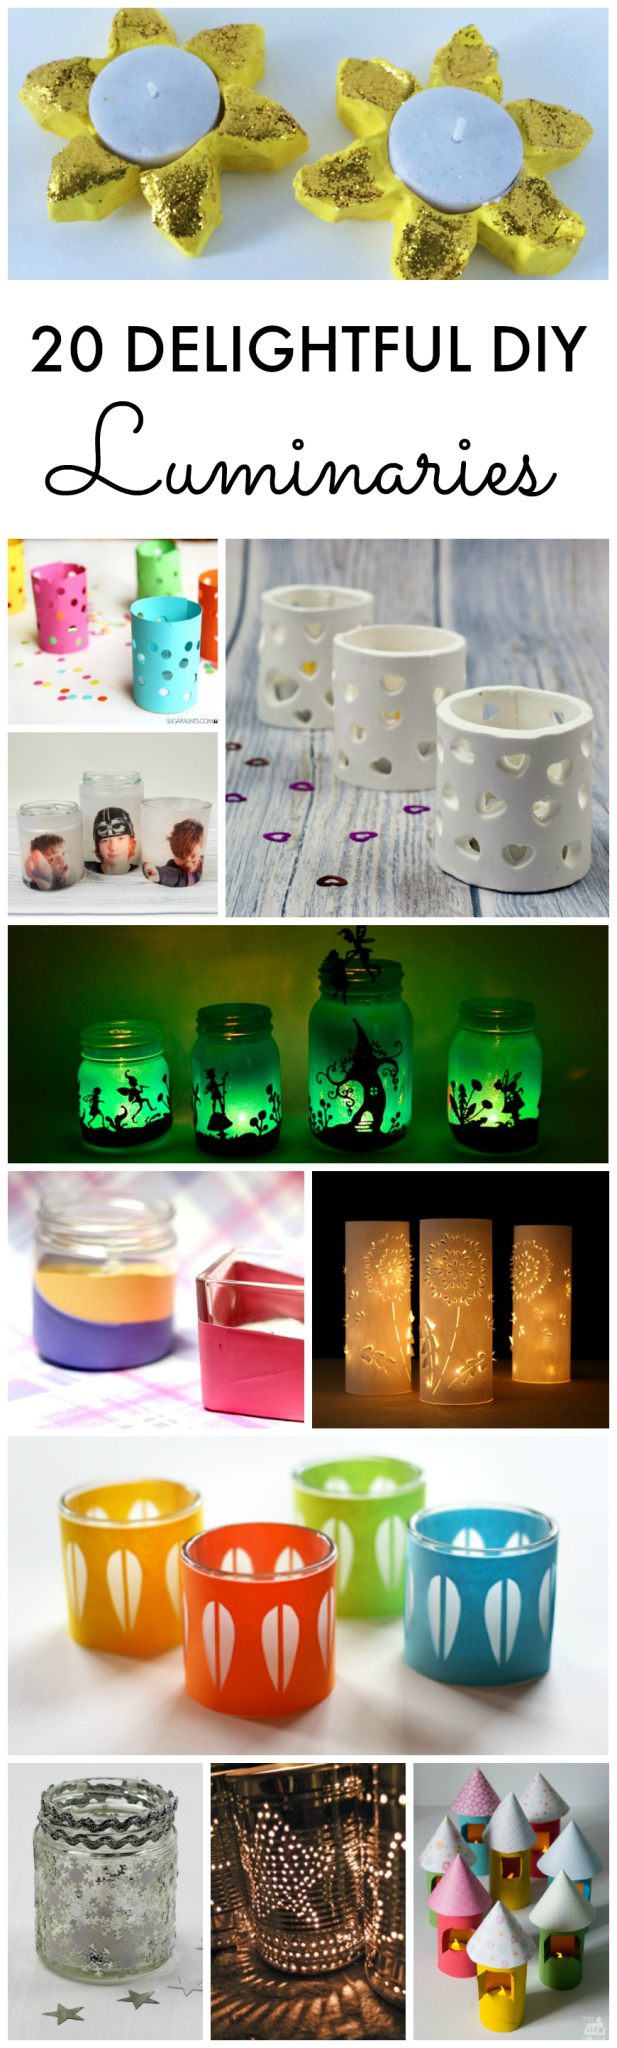 20 Delightful Diy Candle Holders And Luminaries Mum In The Madhouse